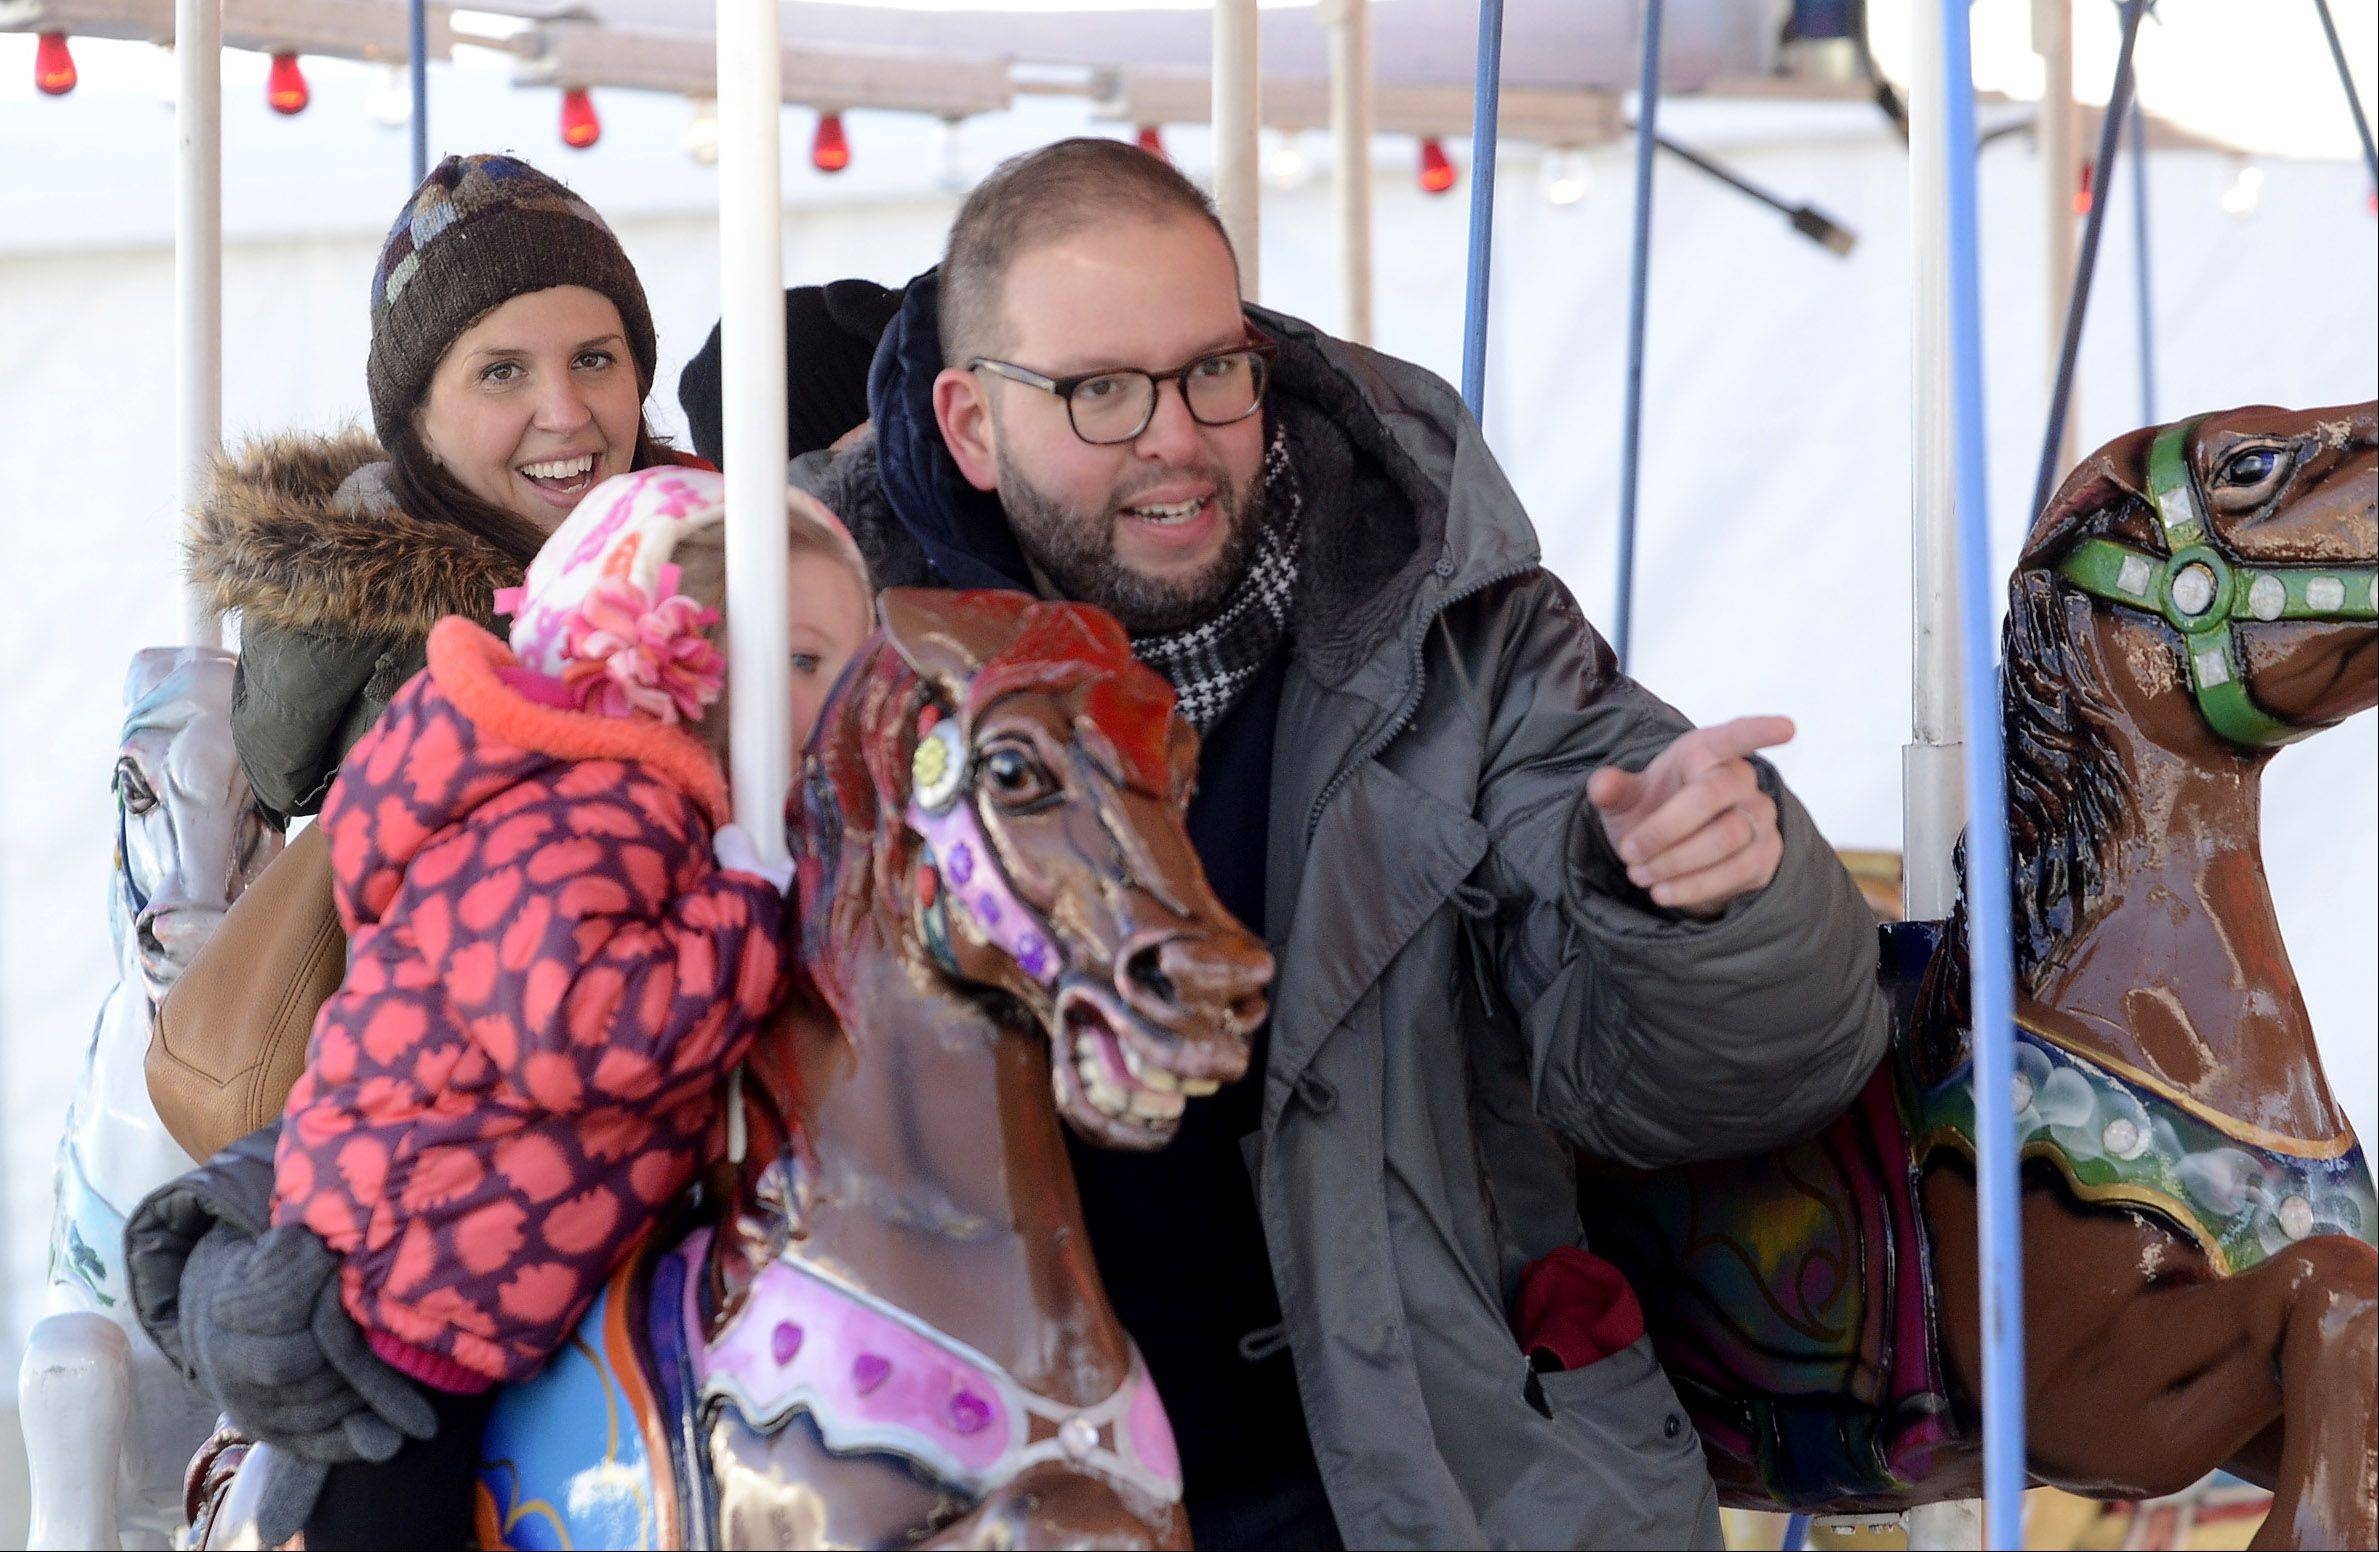 Anne and Ethan Baumfeld of Barrington and their children, Harper and Perry, ride the merry-go-round Saturday at ChristKindlFest in downtown Barrington.